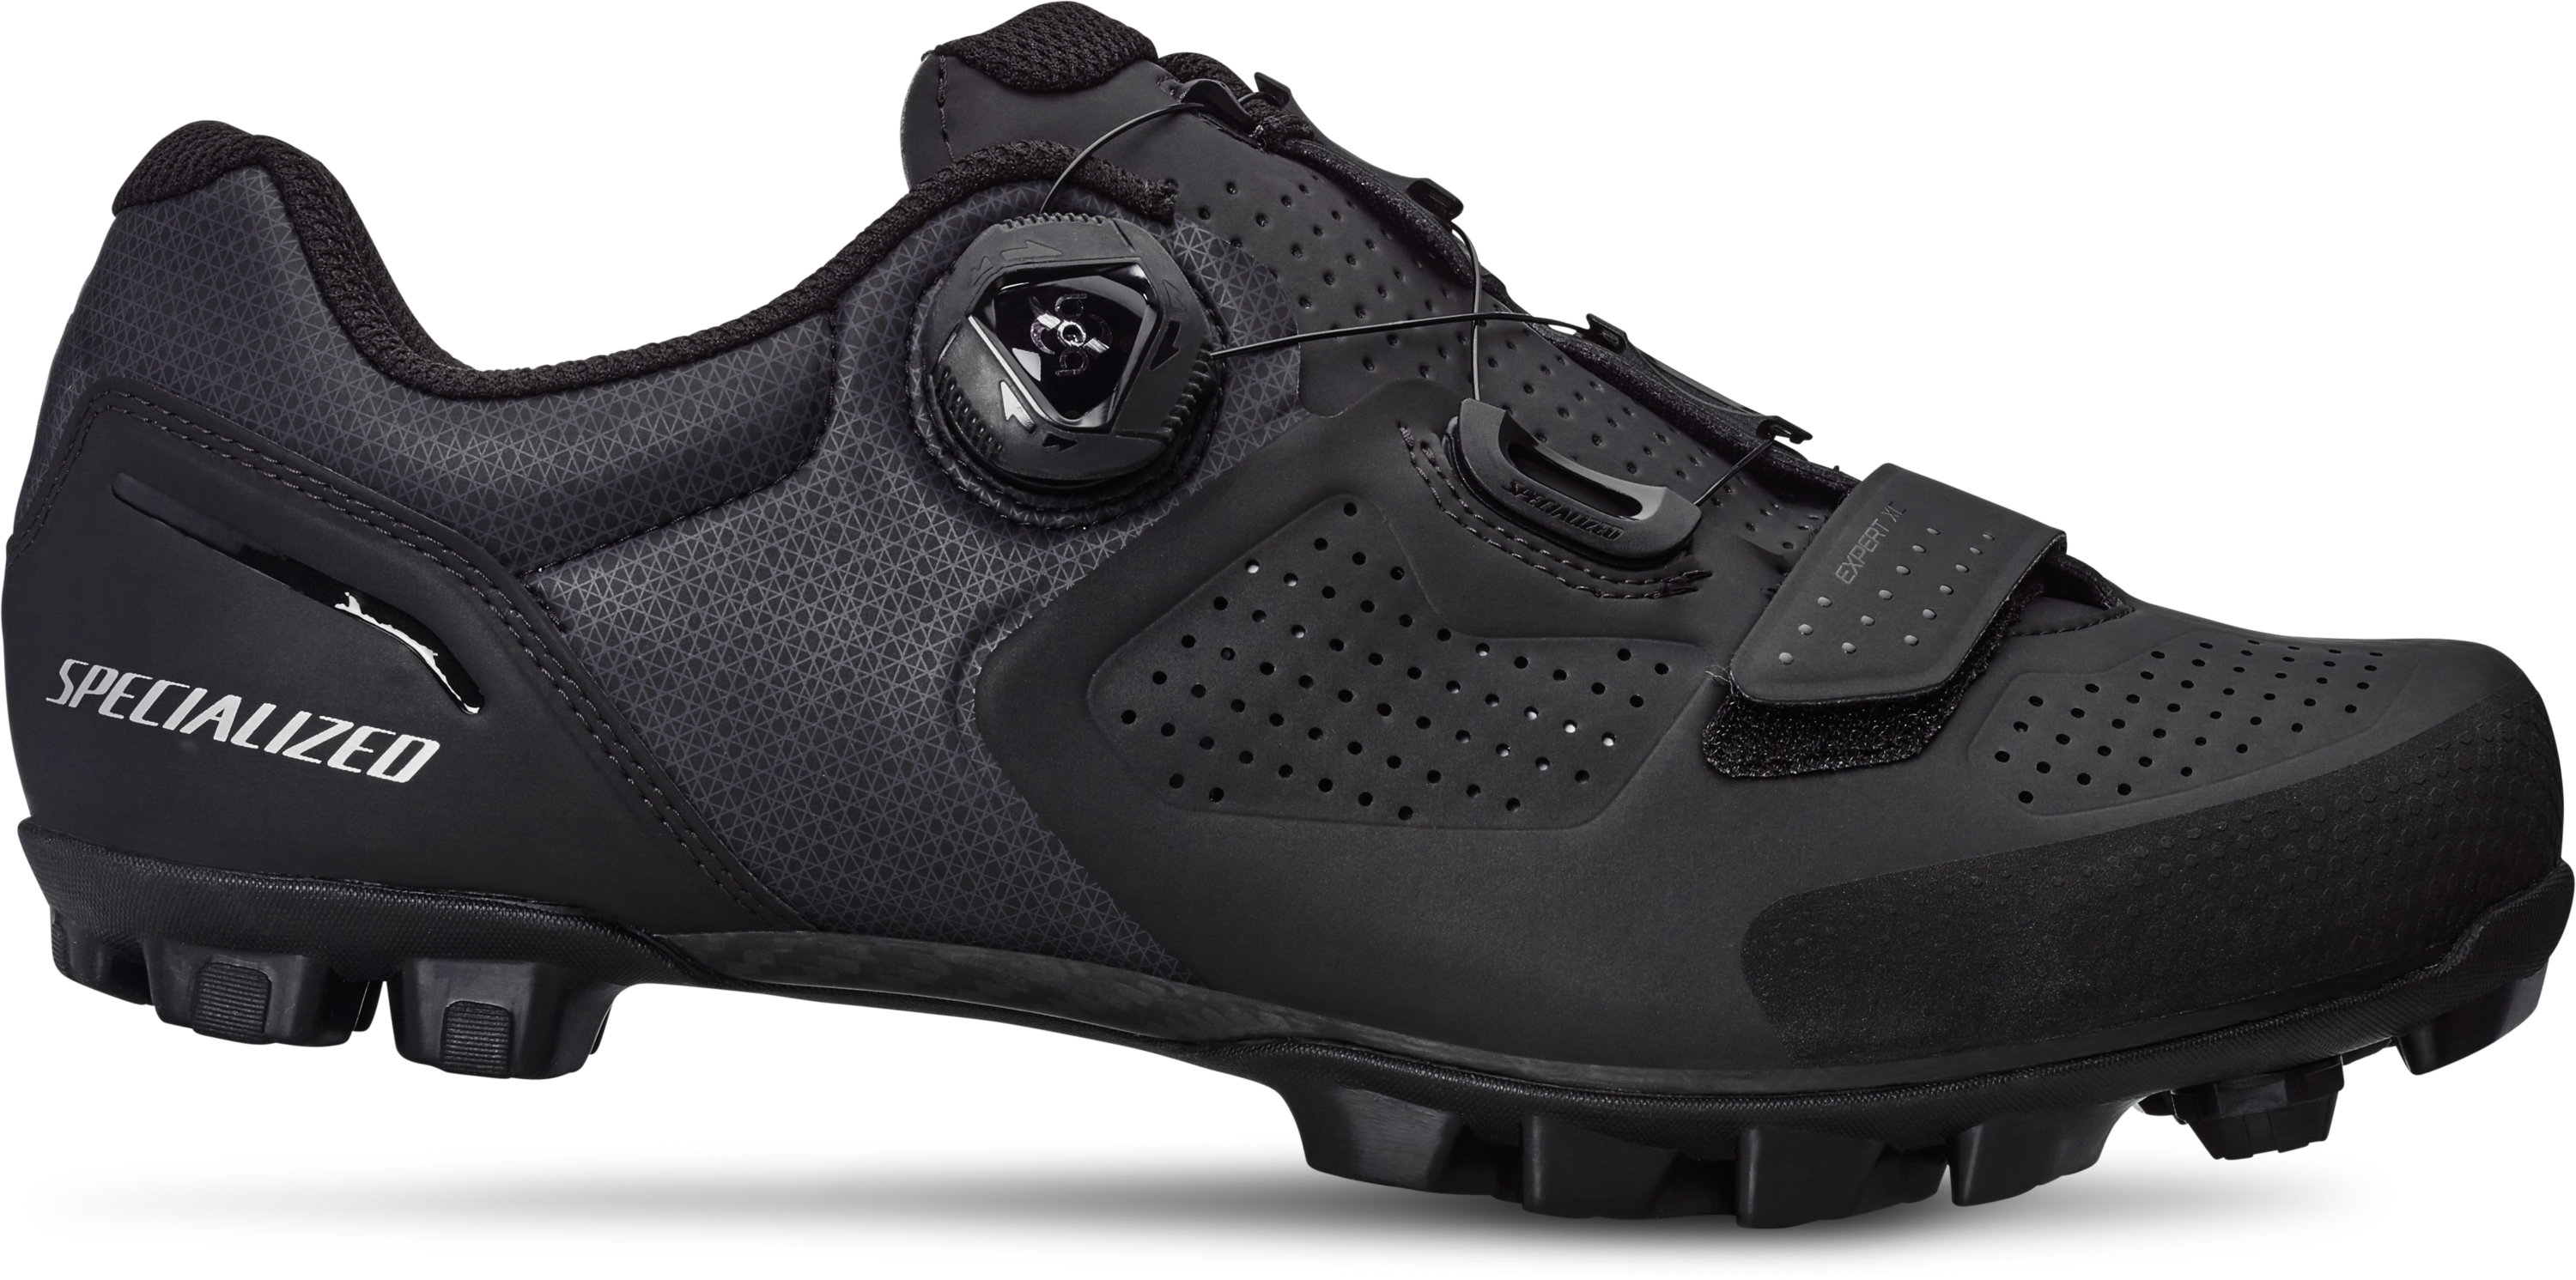 6317ed2055 Expert XC Mountain Bike Shoes